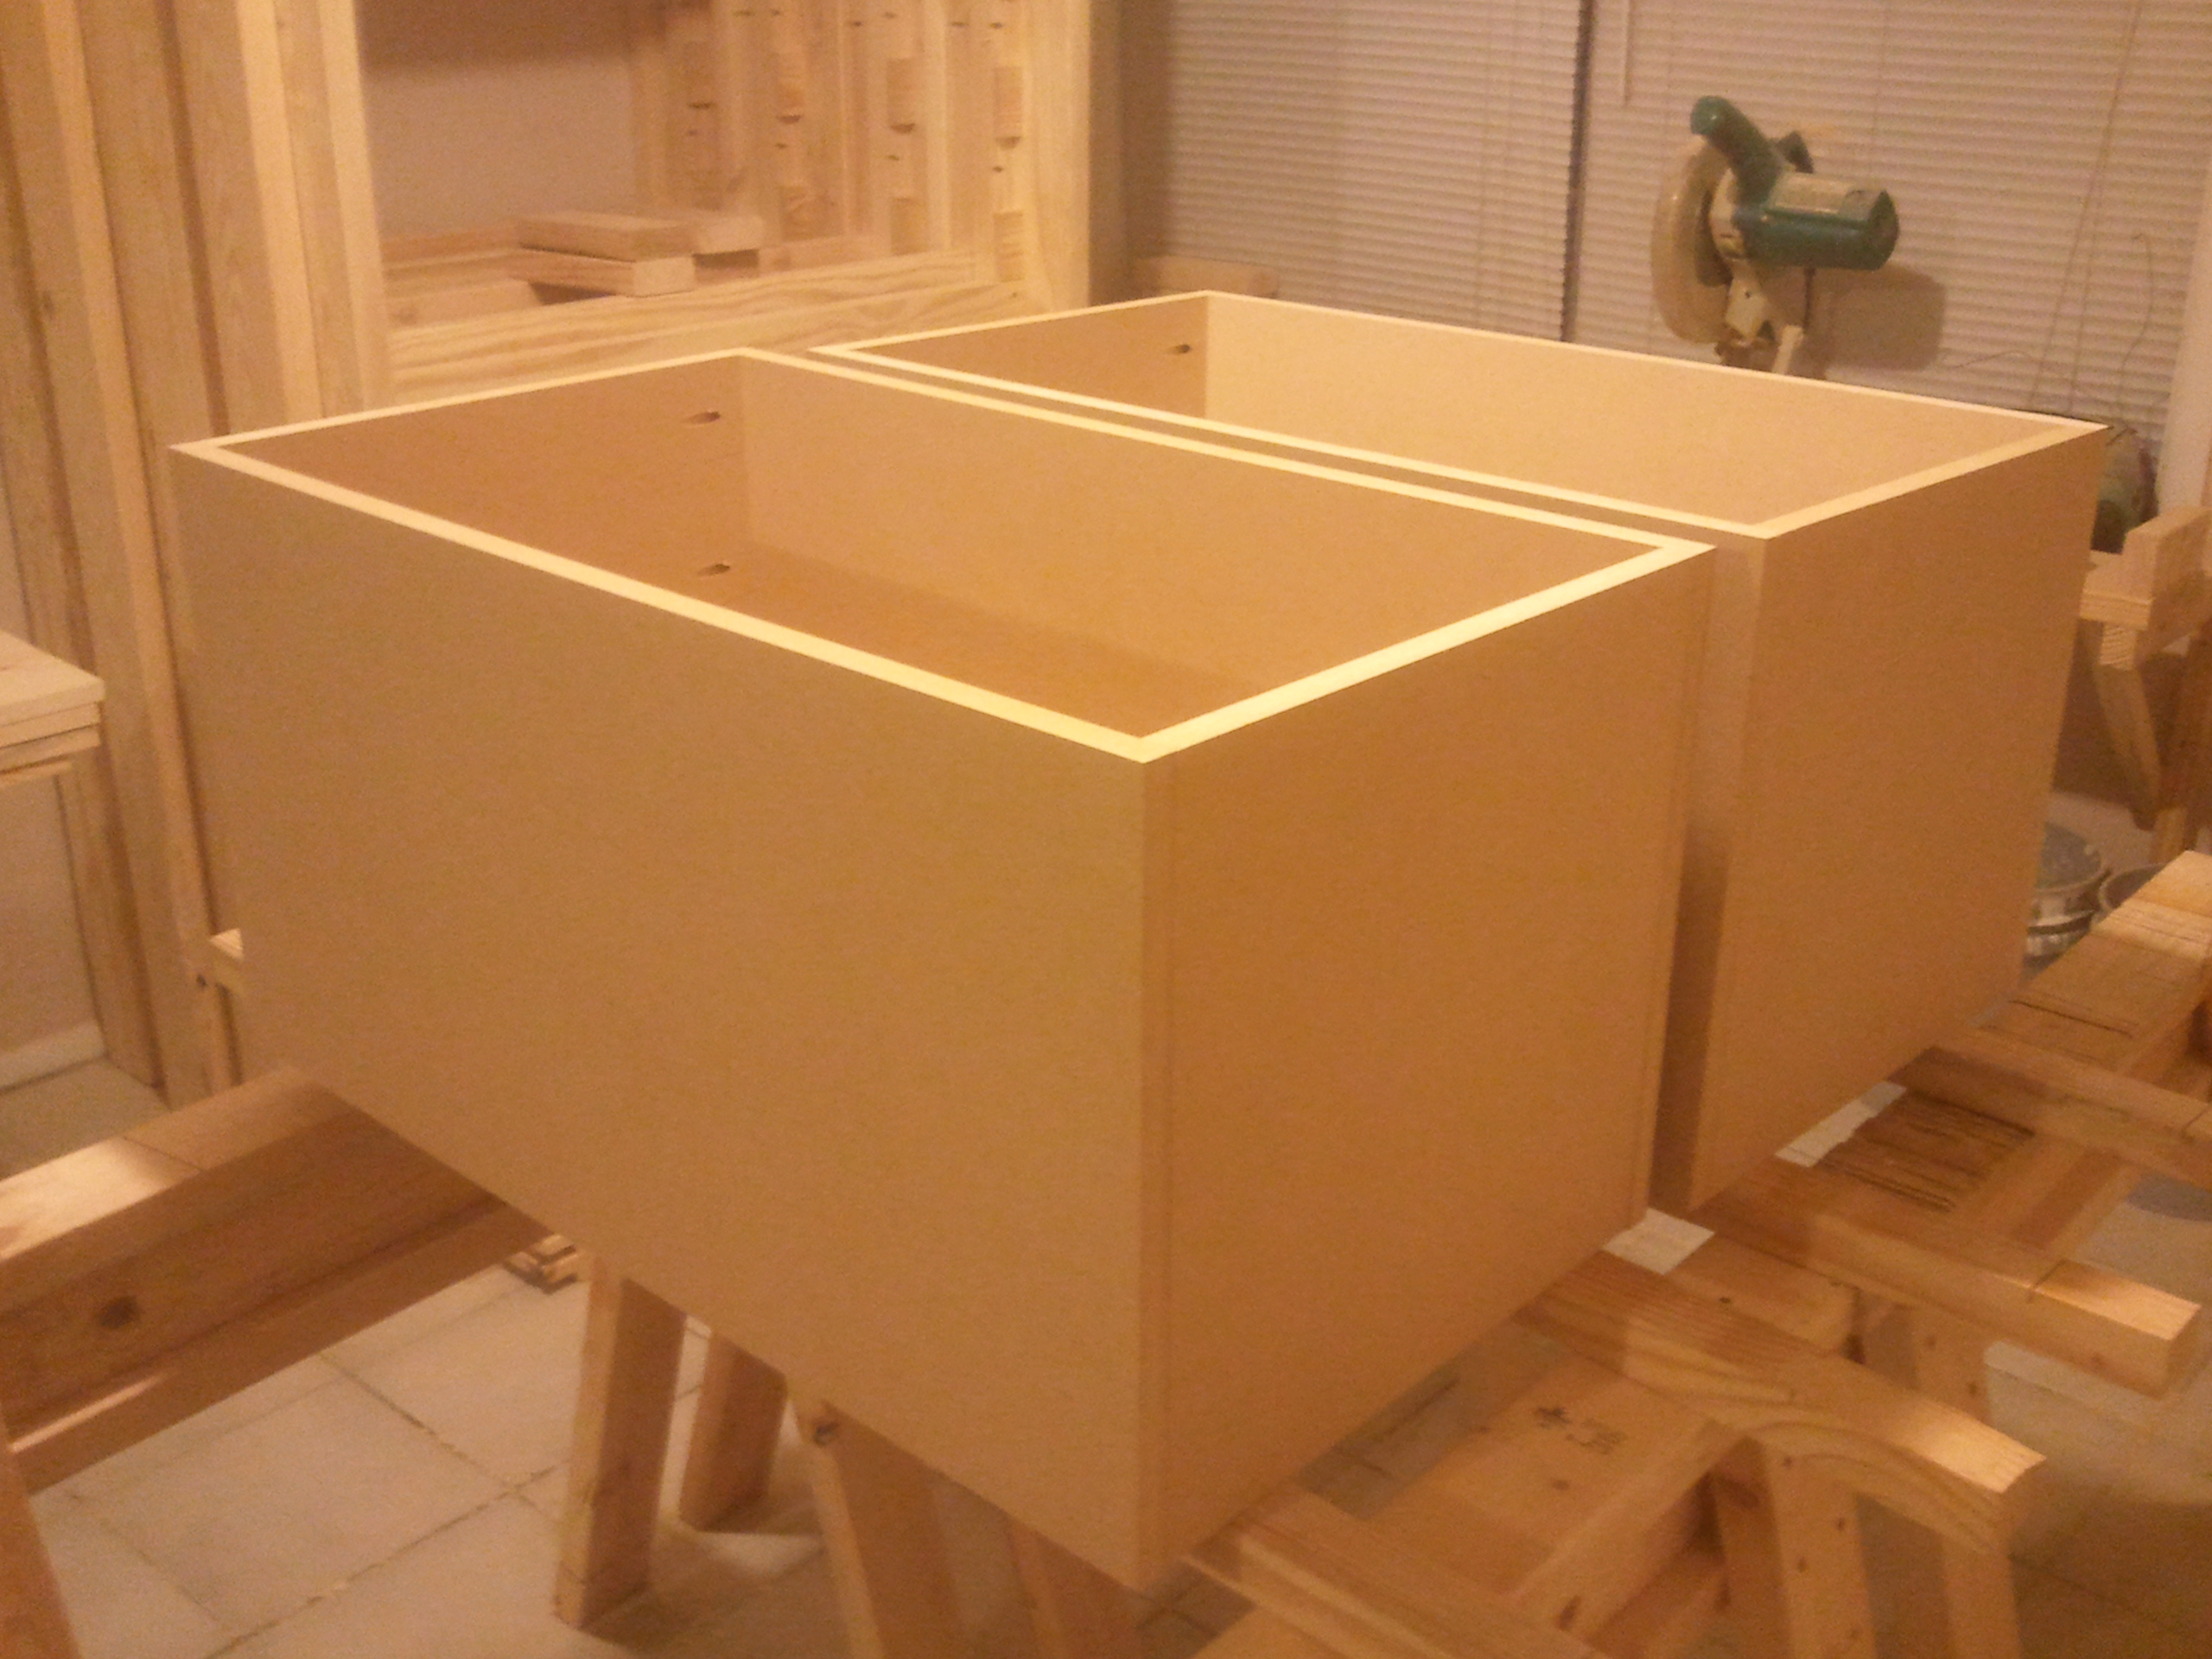 Two Toy Boxes Jays Custom Creations